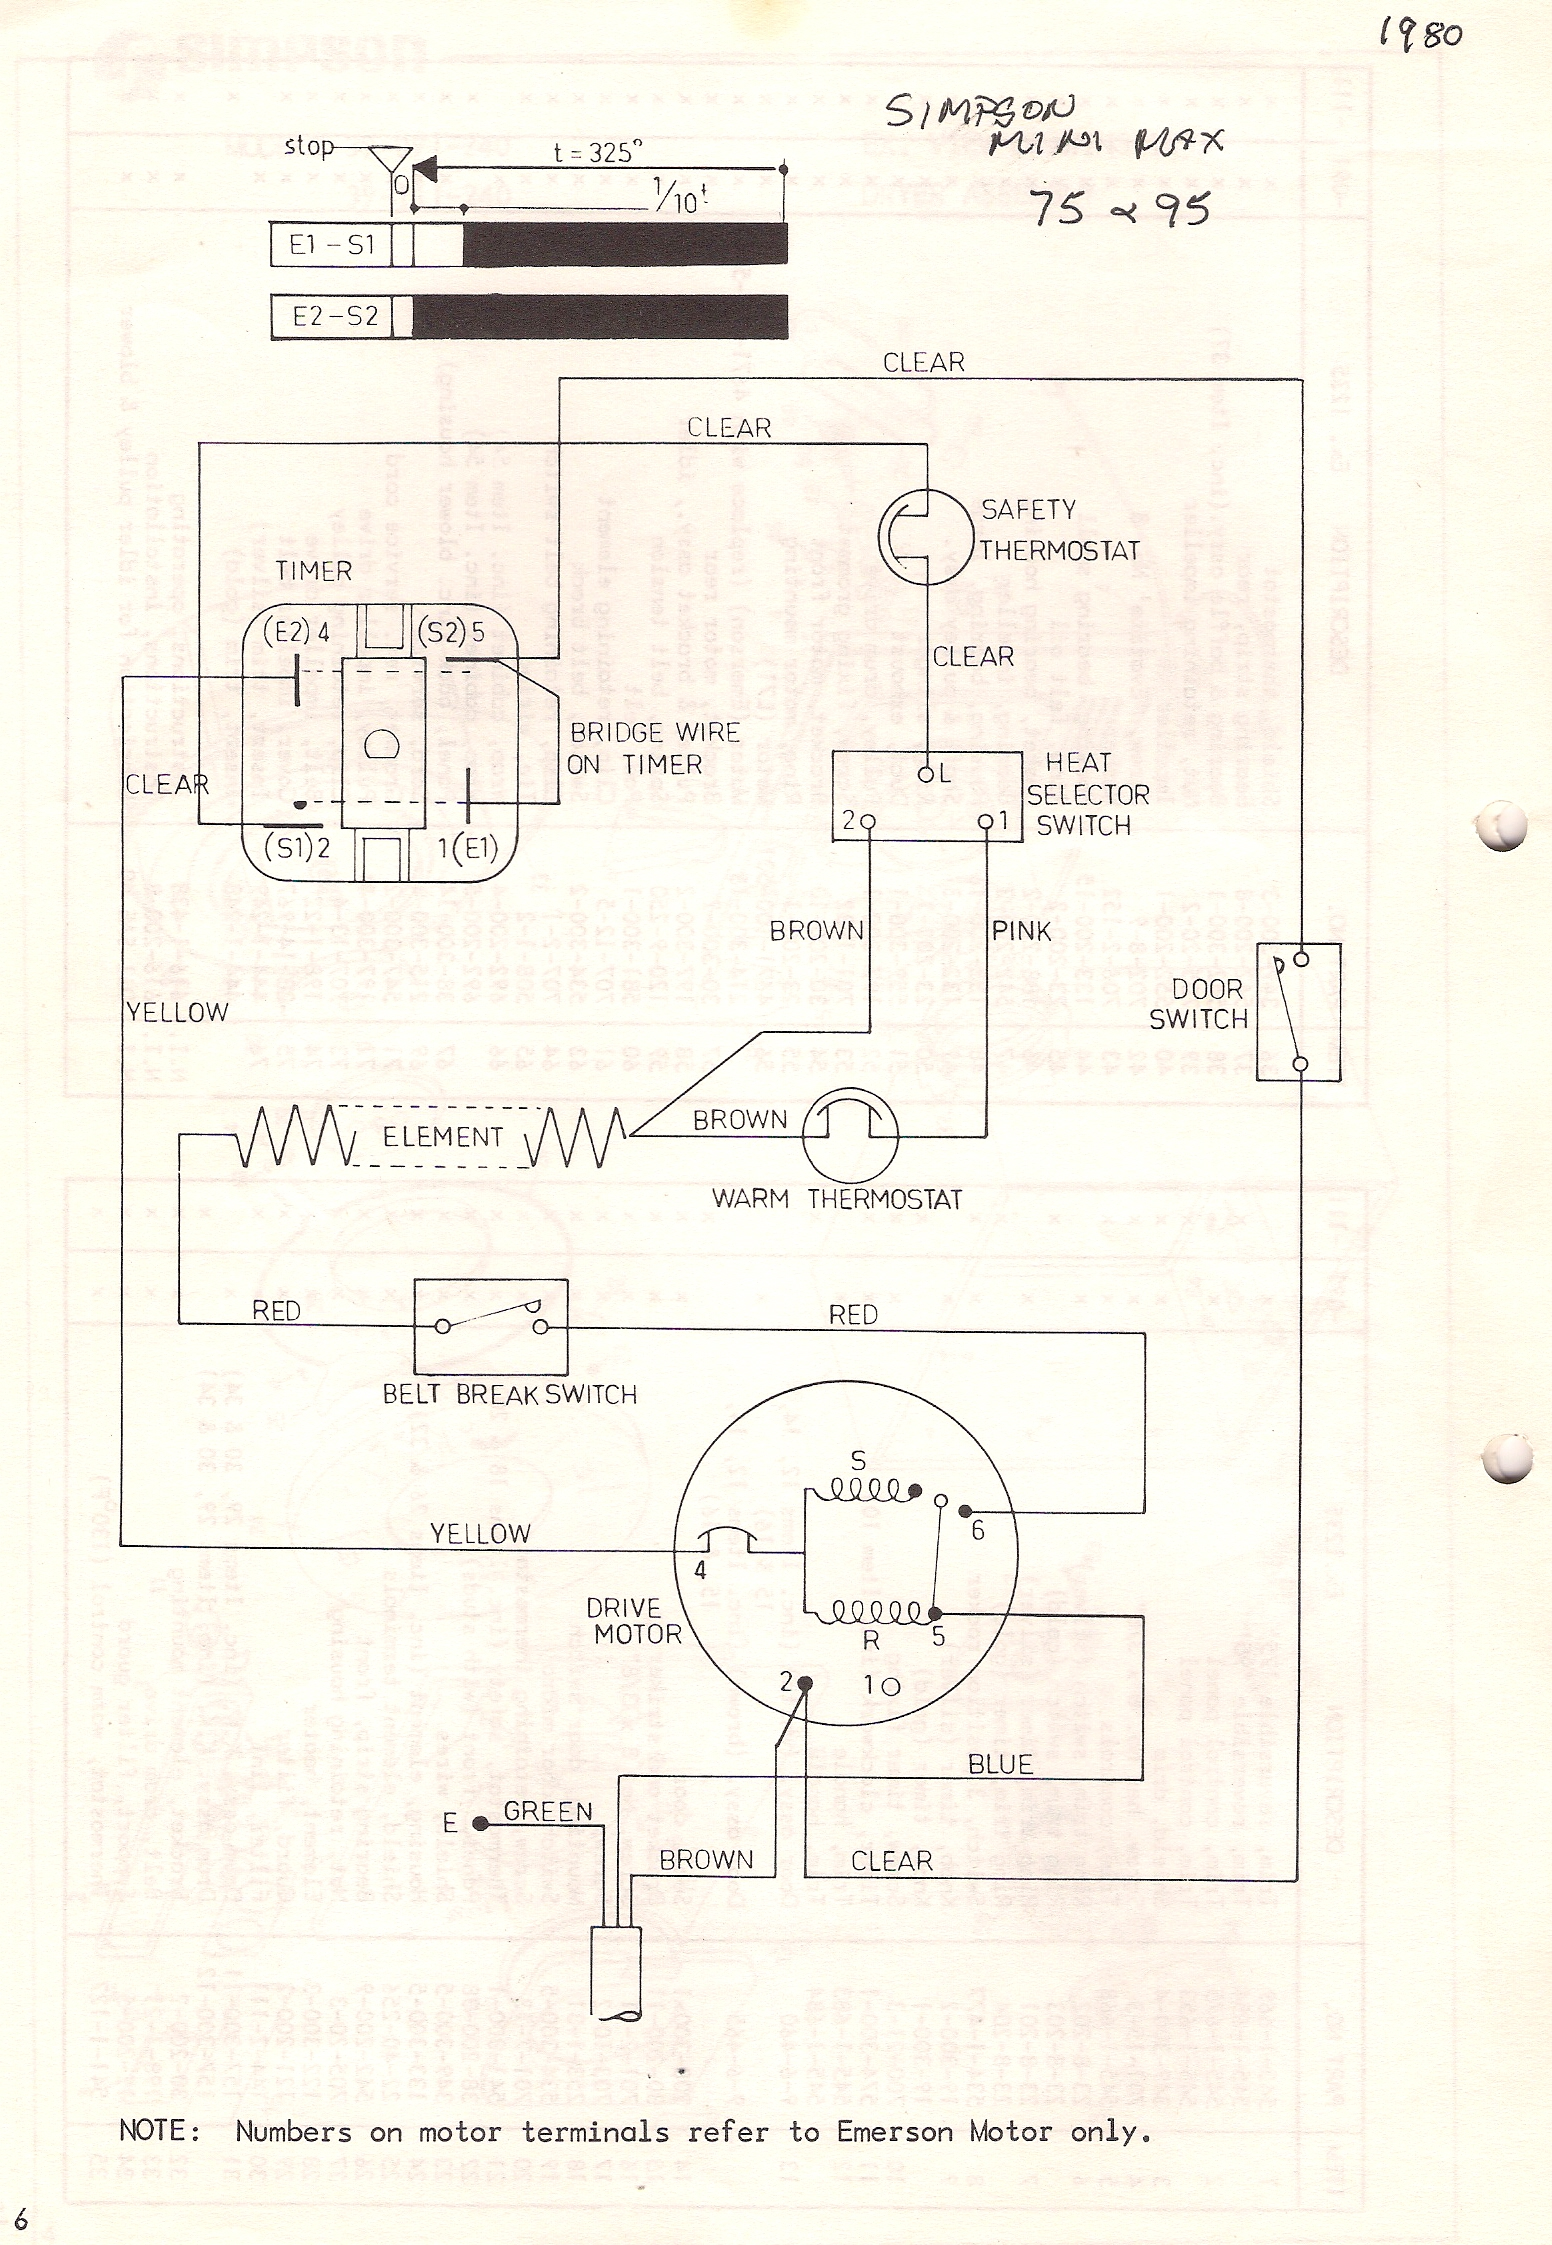 help needed wiring an dryer motor electronics forum (circuits spin dryer motor wiring diagram at panicattacktreatment.co